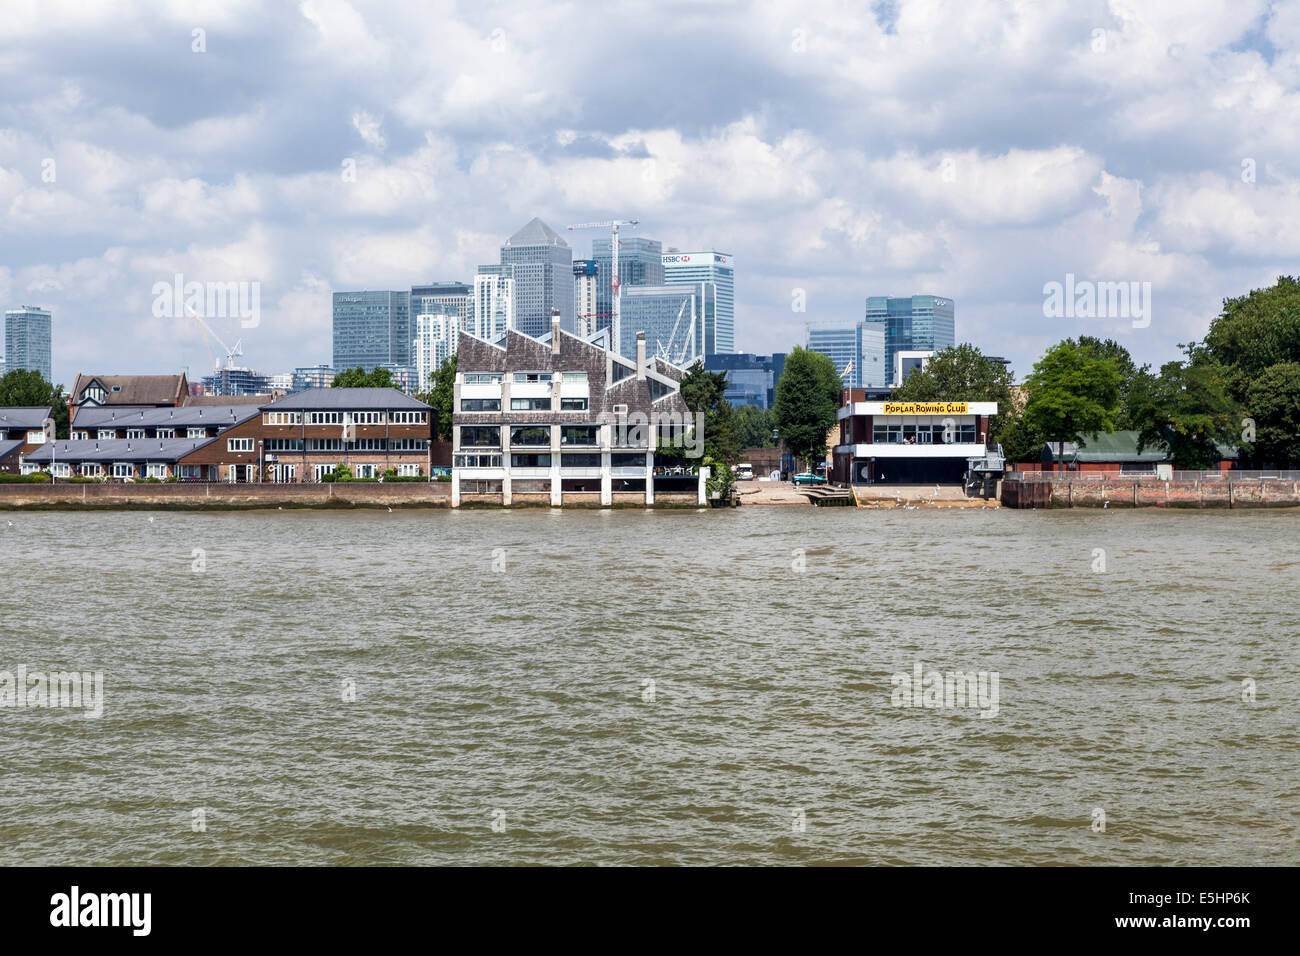 London skyline from Thames river - Canary Wharf Banking district, Isle of Dogs, Poplar rowing club. apartment buildings - Stock Image